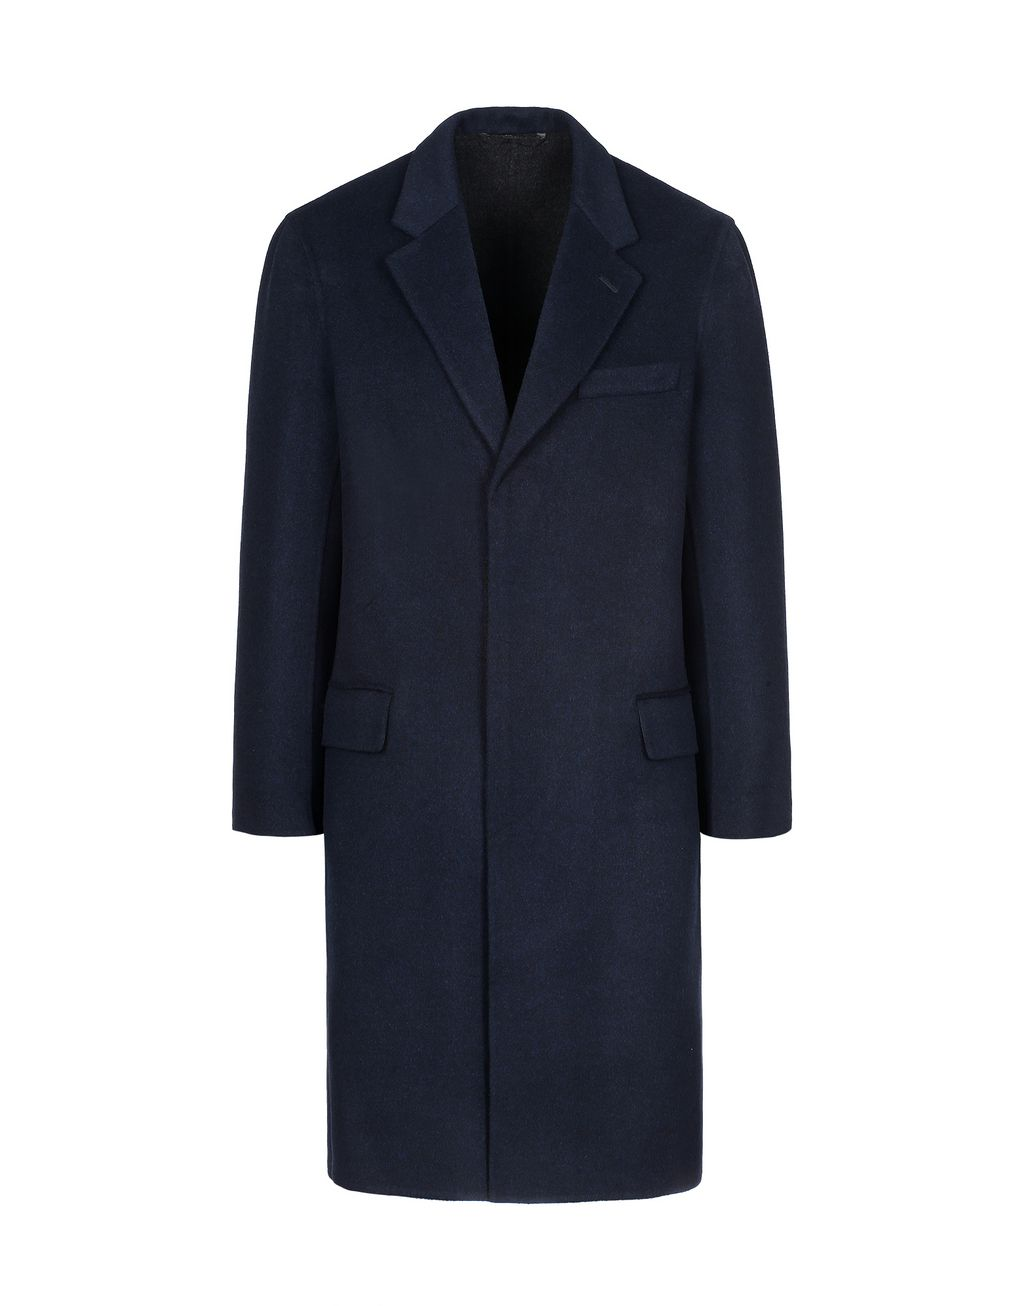 BRIONI Navy Blue Coat Coats & Raincoats Man f